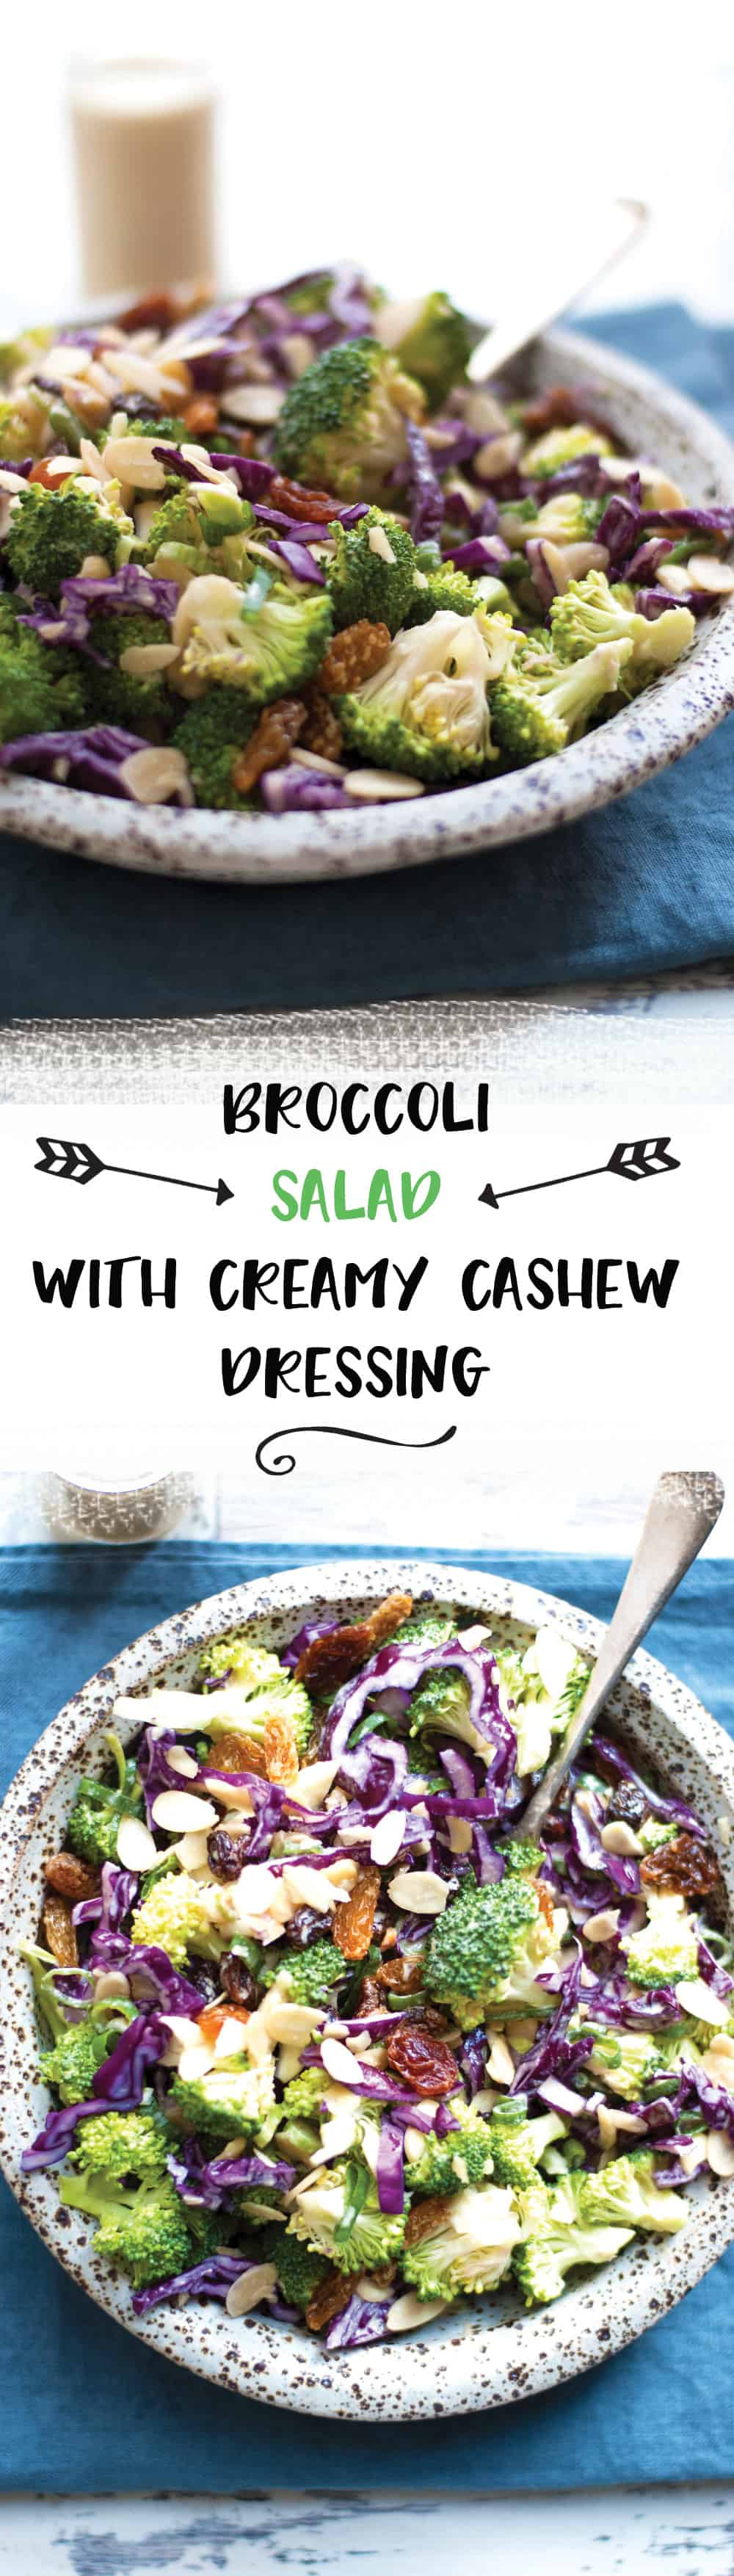 Crunchy broccoli salad with creamy cashew dressing. Quick and easy recipe, packed with all the good stuff! | via @annabanana.co